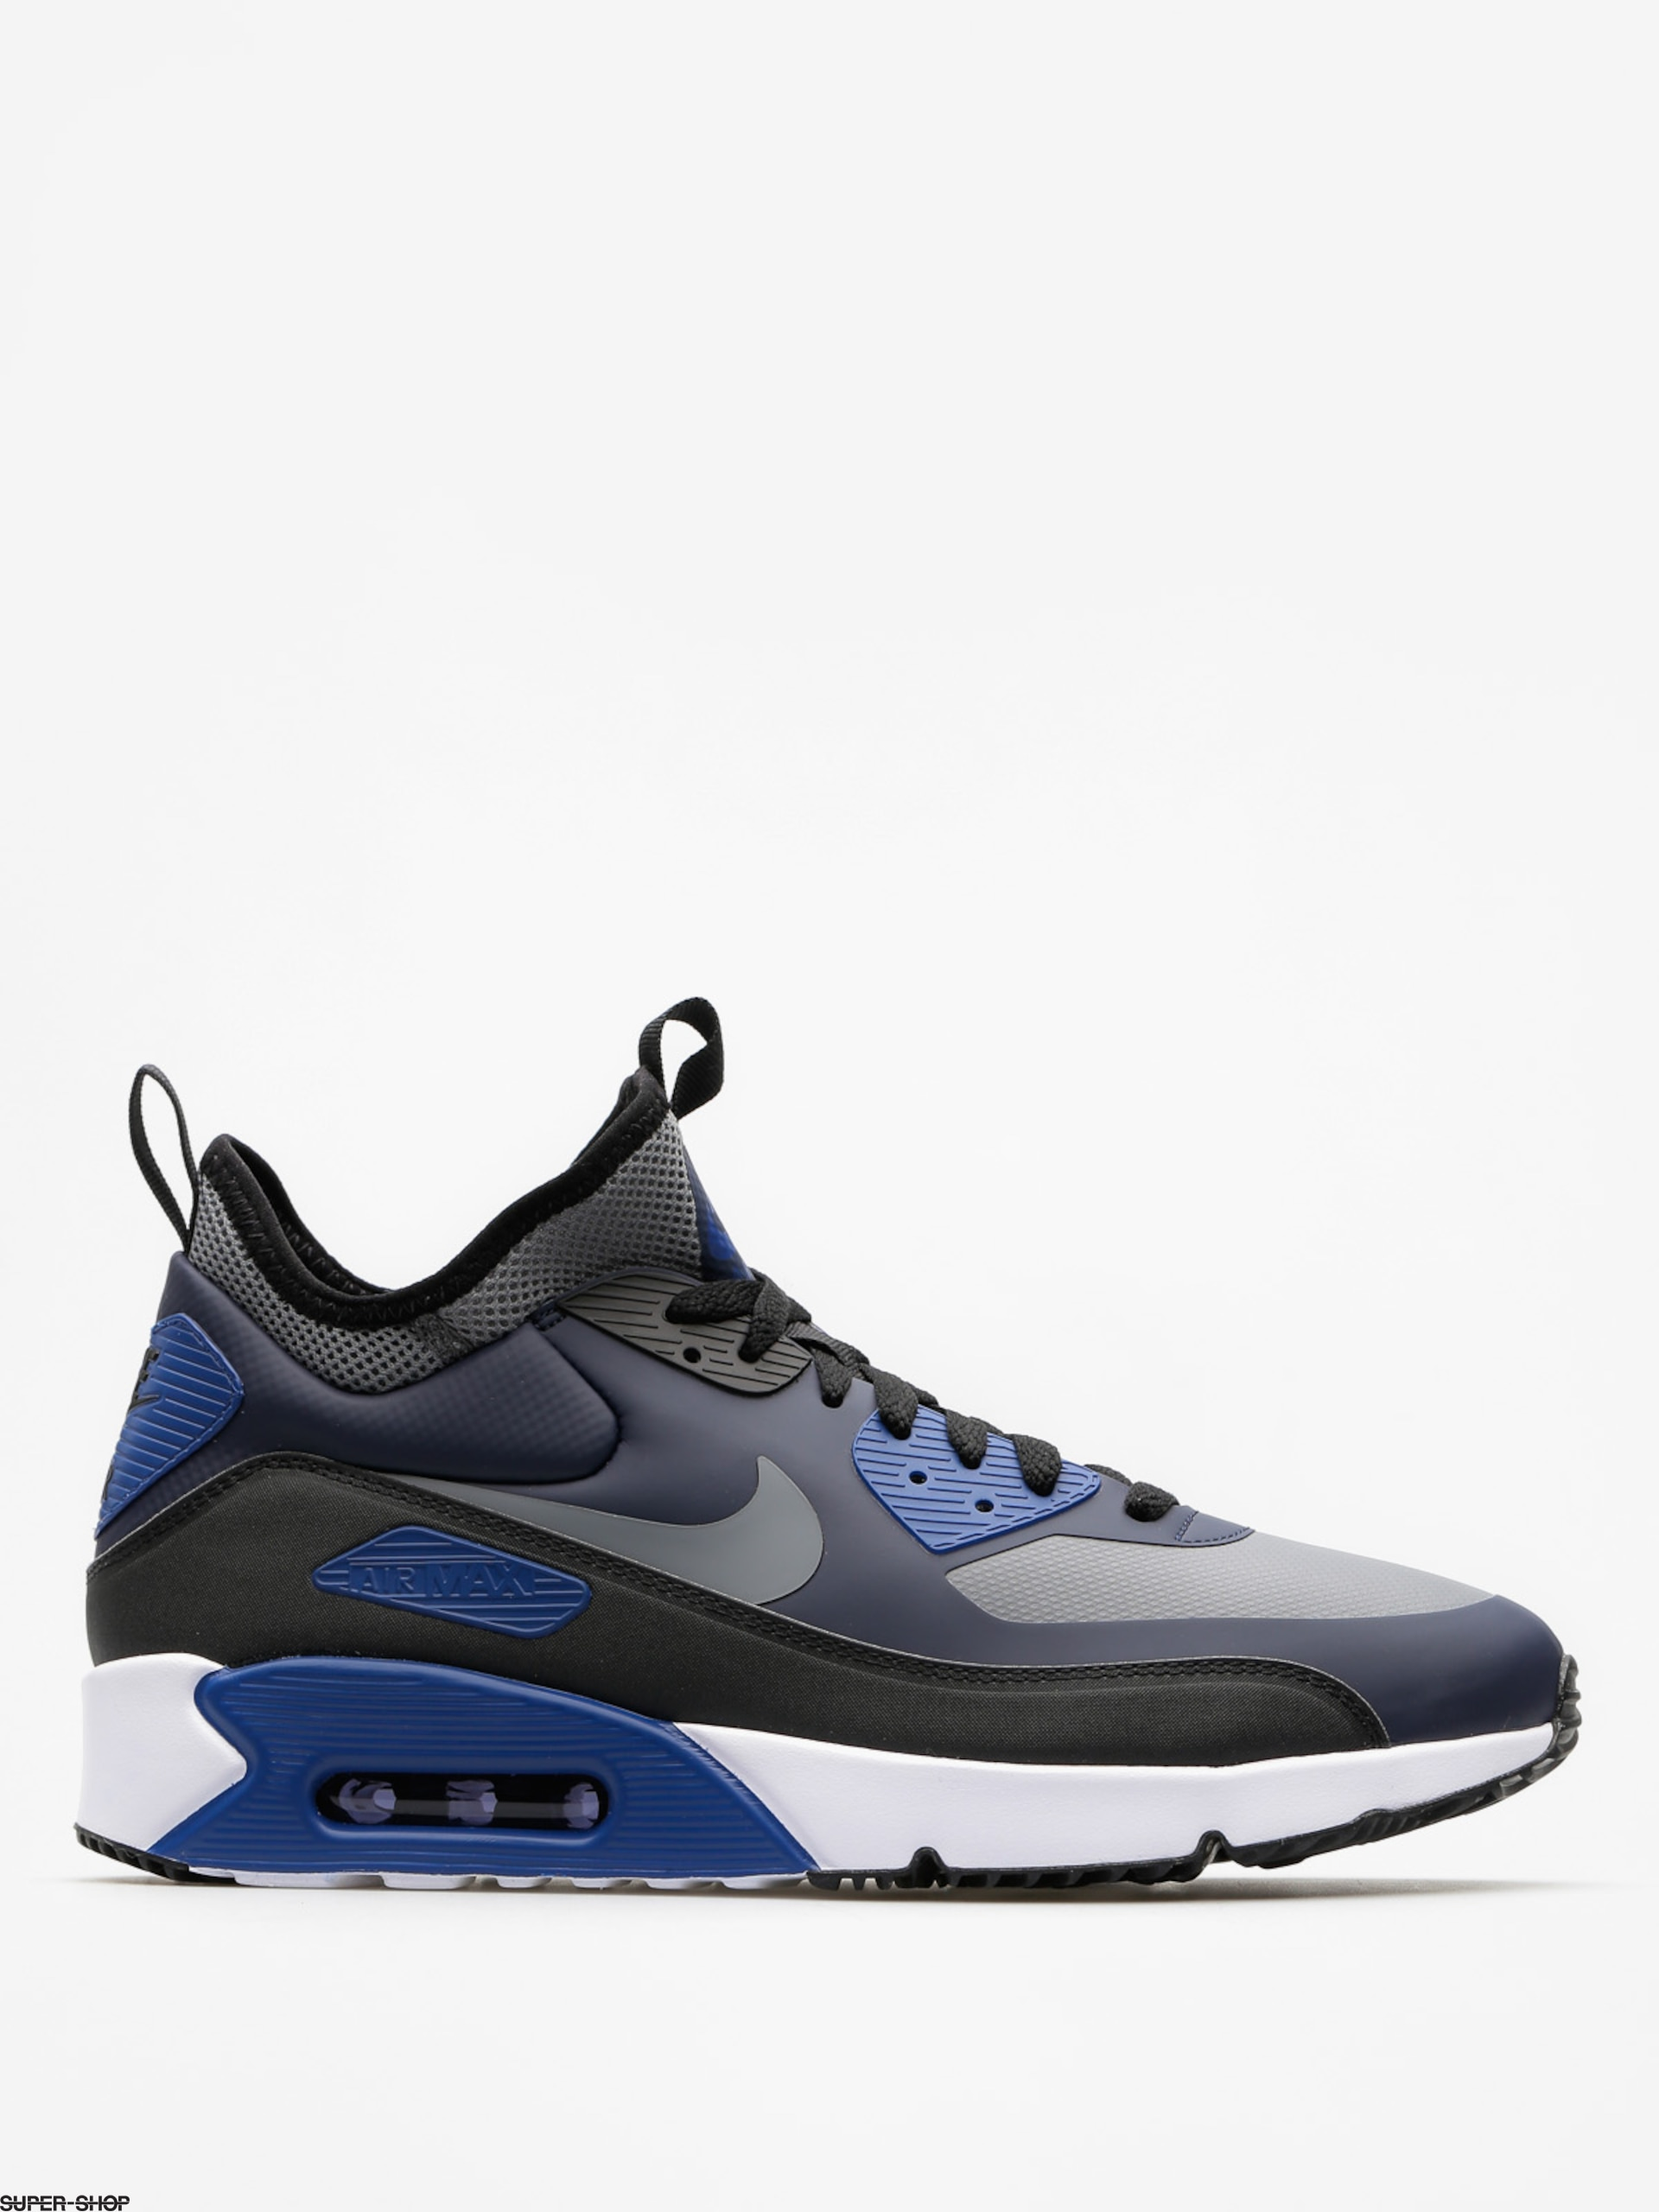 Nike Schuhe Air Max 90 Ultra Mid Winter (obsidian/cool grey black gym blue)